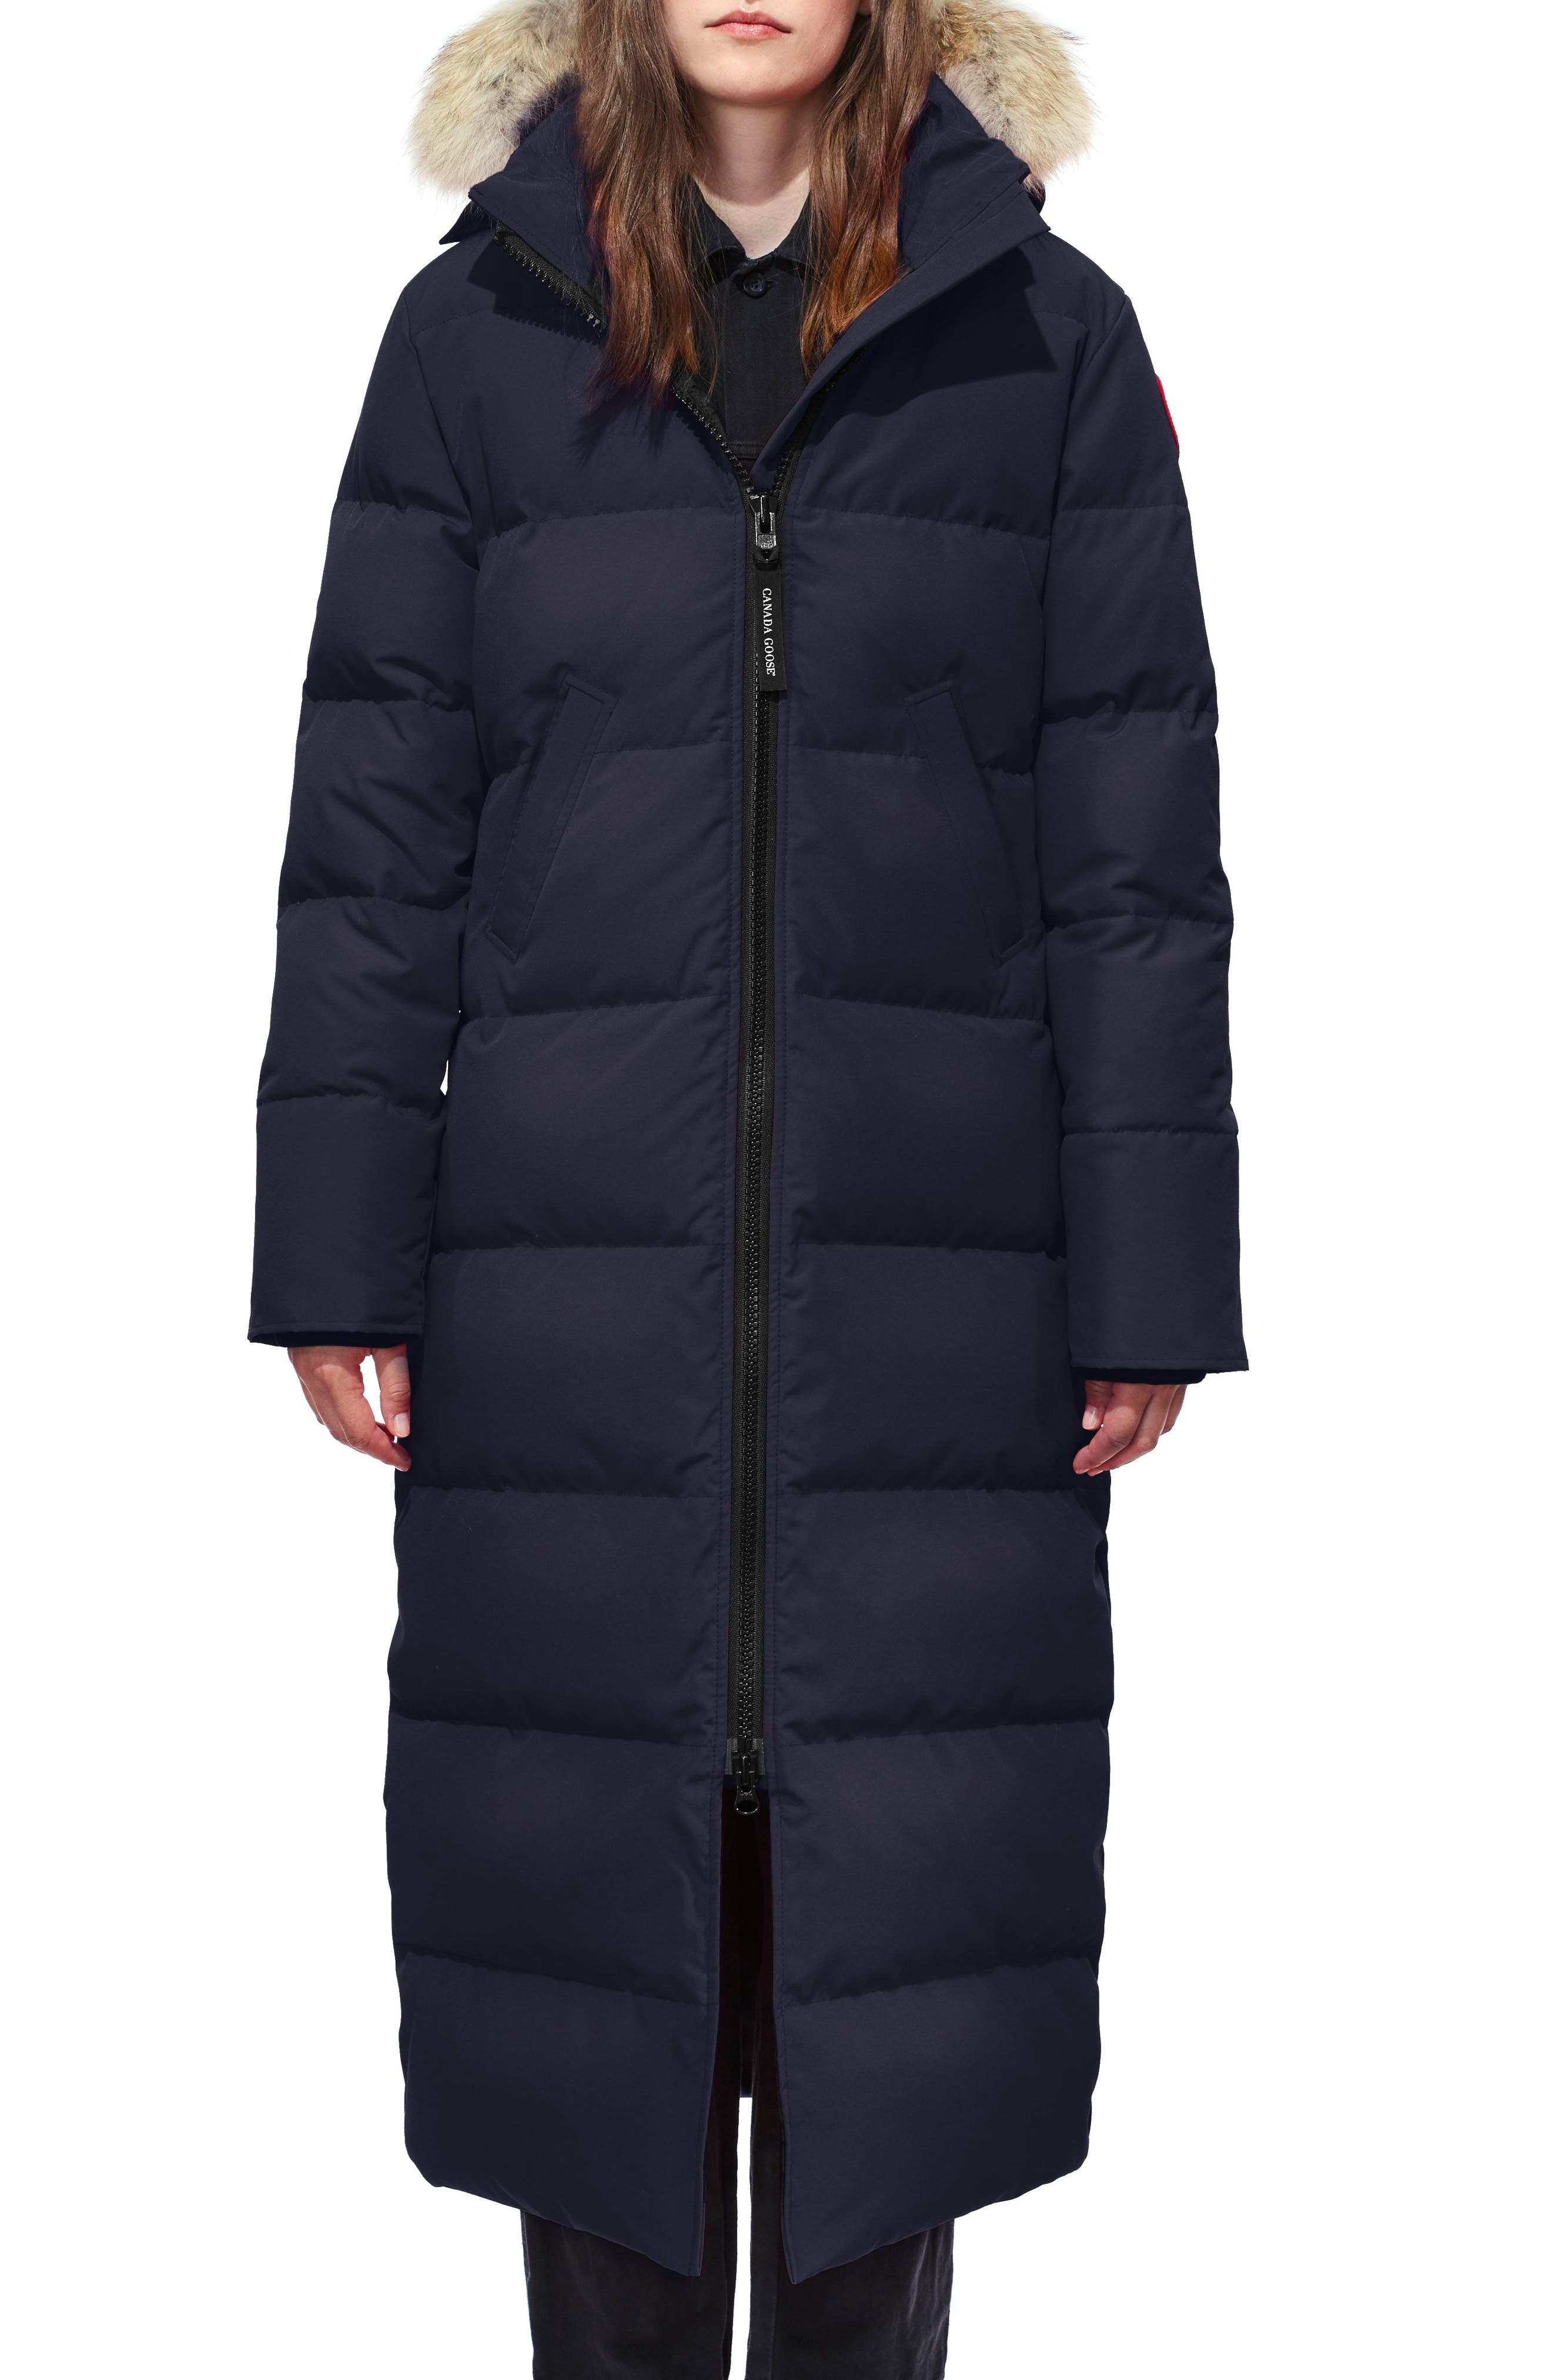 CANADA GOOSE, Mystique Fusion Fit Down Parka with Genuine Coyote Fur, Main thumbnail 1, color, ADMIRAL BLUE